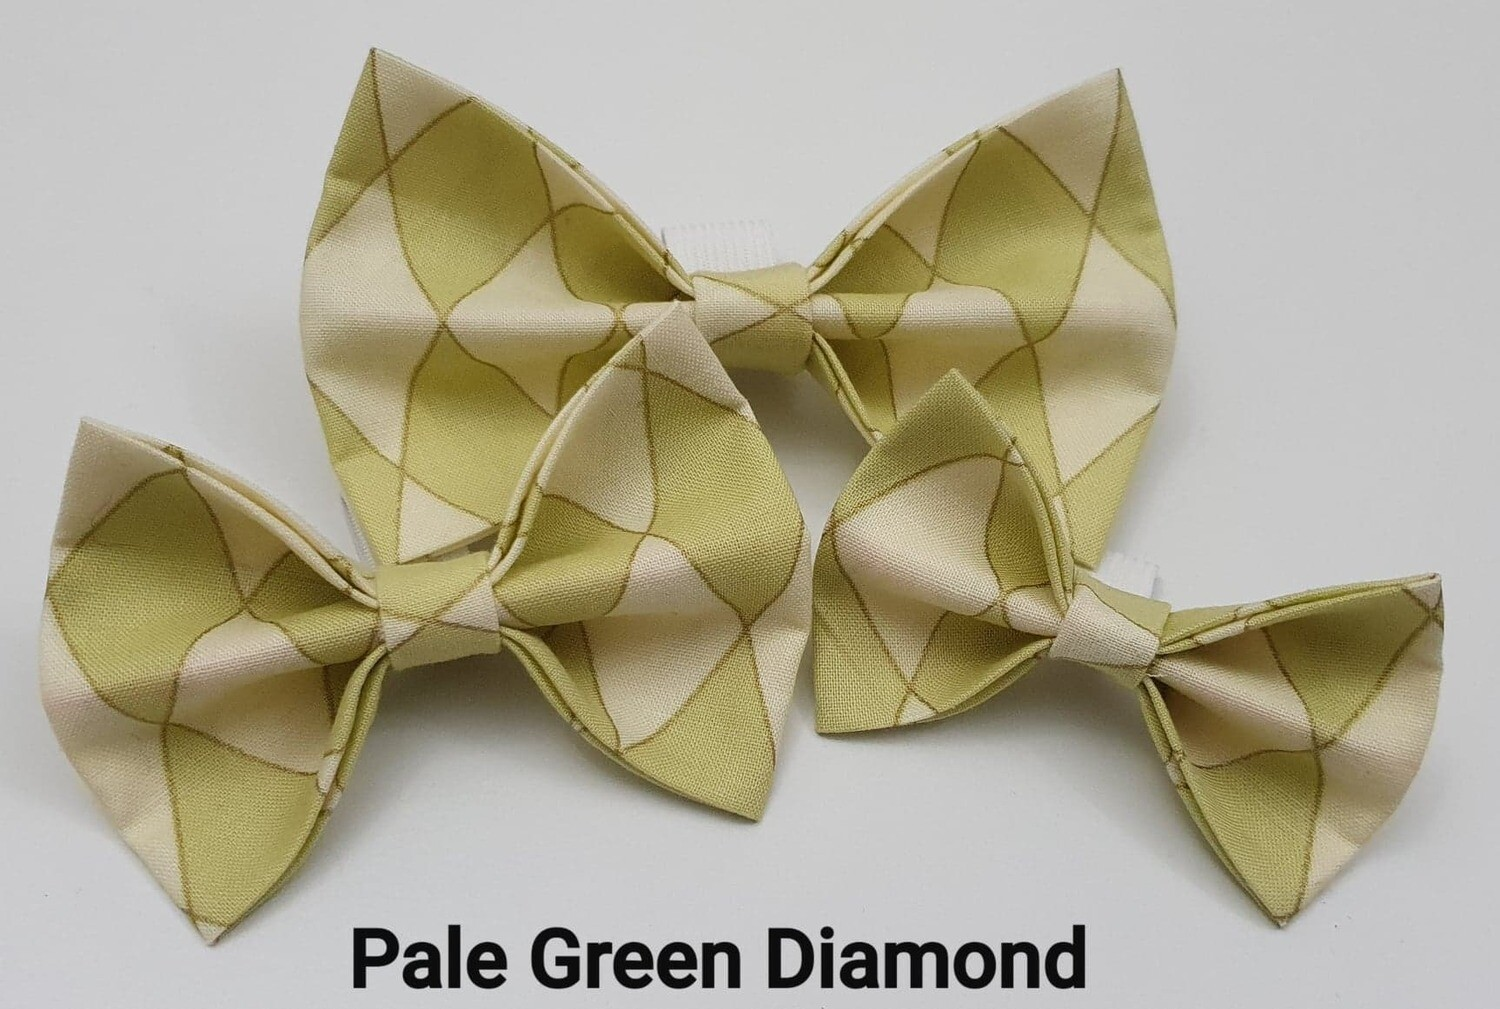 Pale Green Diamond.